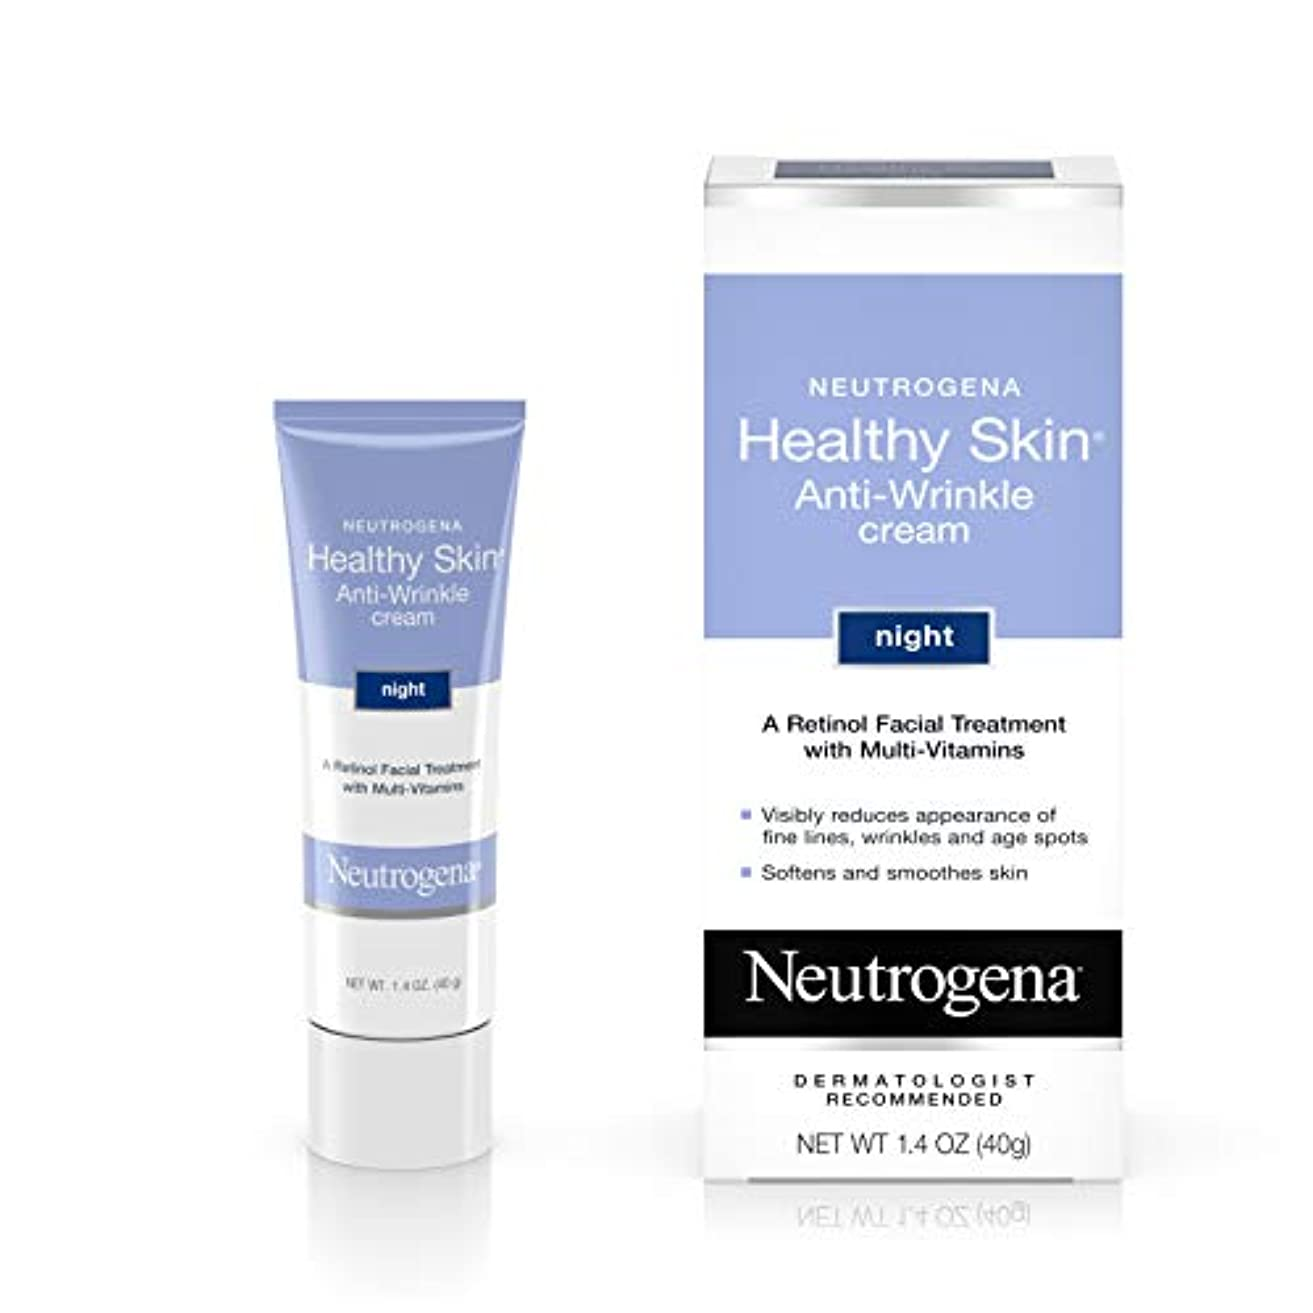 裕福な感謝マンハッタン海外直送肘 Neutrogena Healthy Skin Anti-Wrinkle Night Cream, 1.4 oz